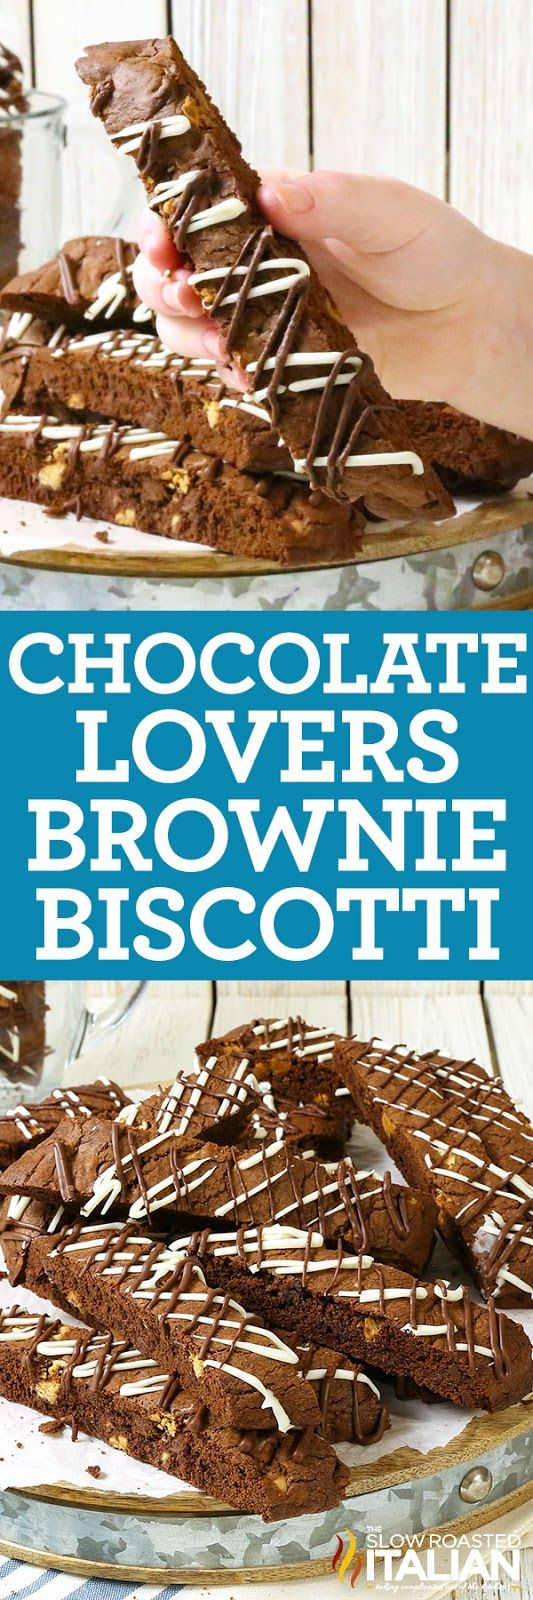 Chocolate Lovers Brownie Biscotti is the ultimate twist on the classic Italian cookie! A simple recipe for this glorious crunchy cookie, that is perfect for dunking, and will make the perfect gift for the chocoholic in your life! They are rich and chocolaty with 4 kinds of chocolate and a special ingredient to really enhance the flavor they totally irresistible!